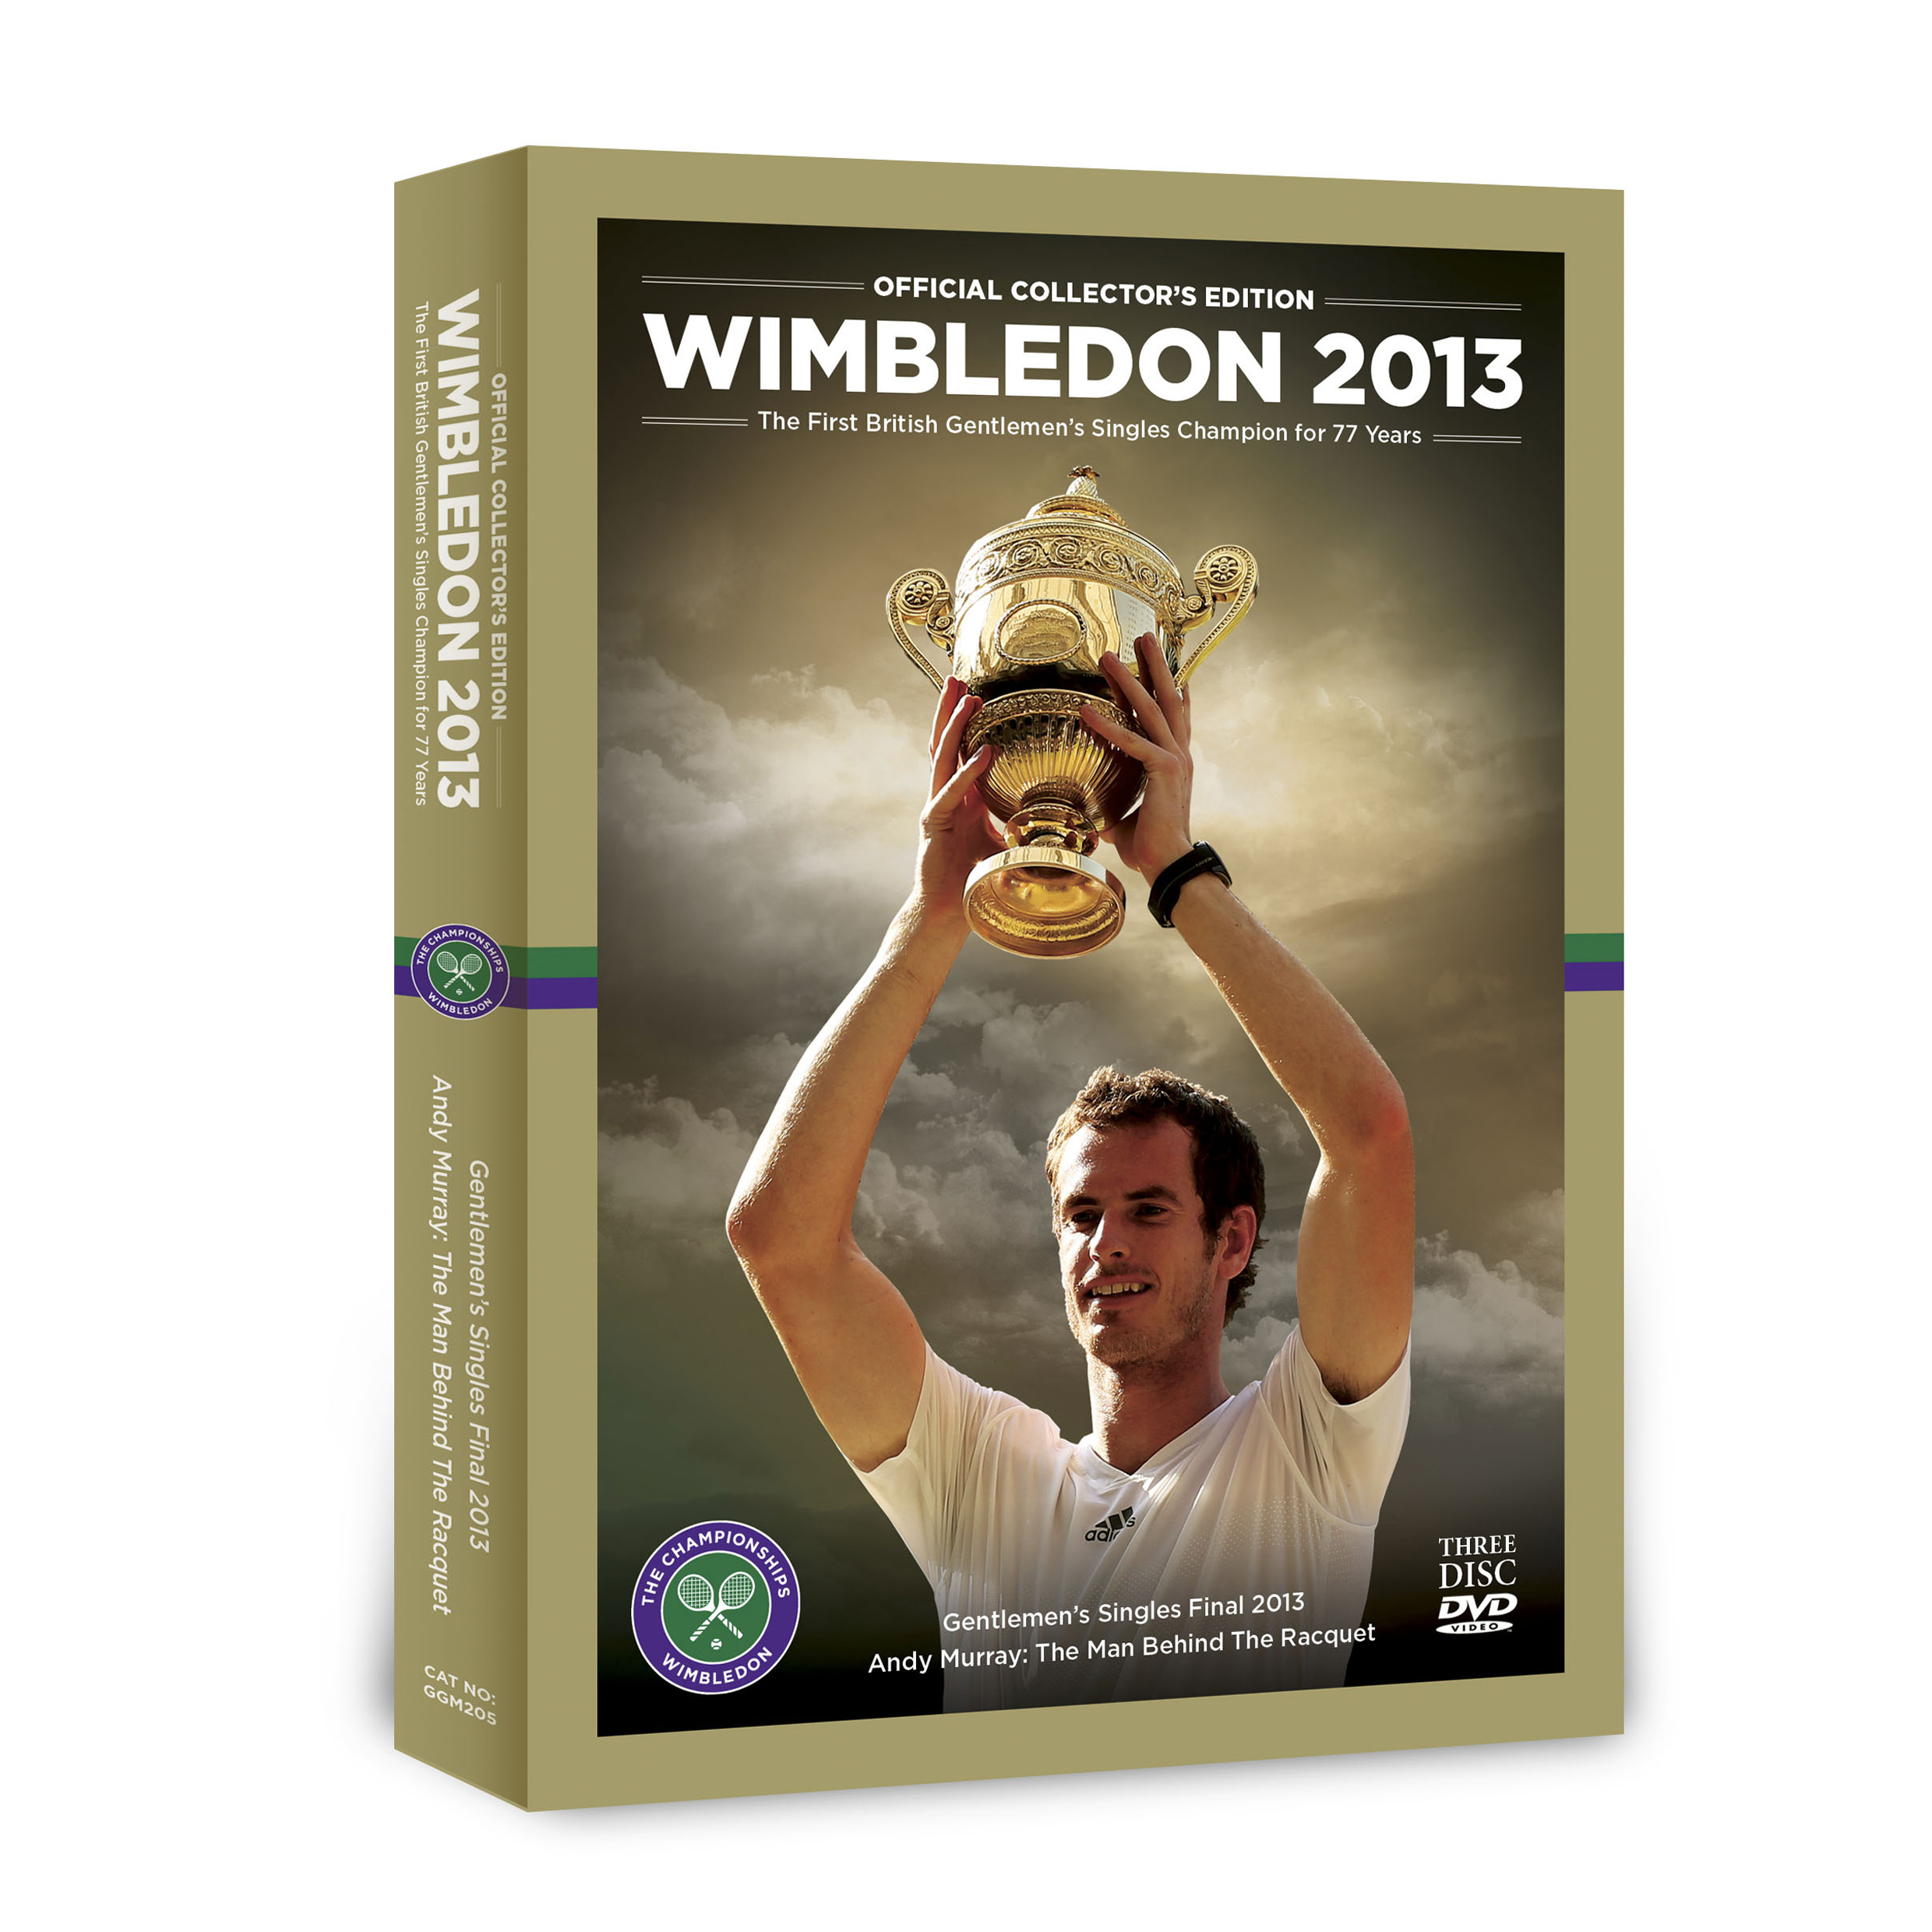 Wimbledon 2013 Official Collector`s Edition 3x DVD Boxset - Mens Final 2013 & Andy Murray: The Man Behind the Racquet